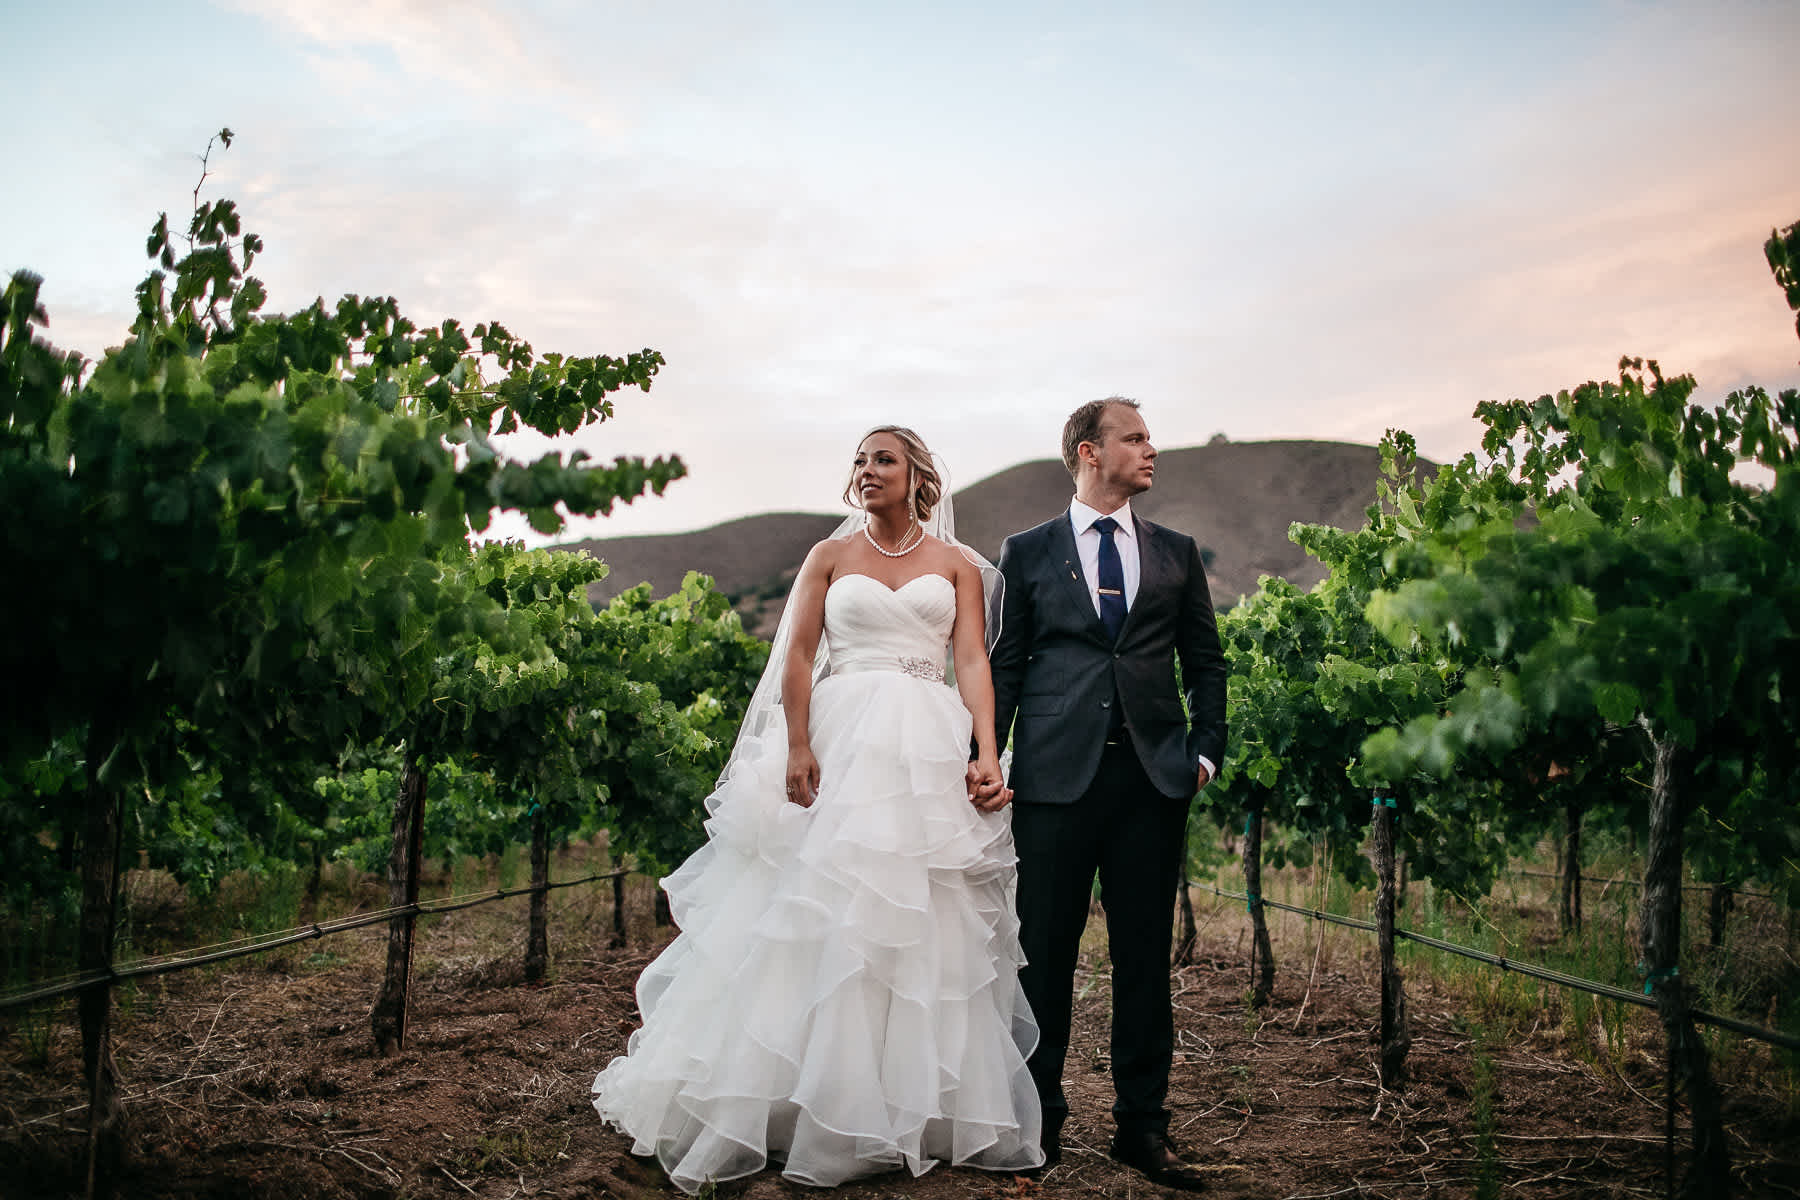 kirigin-cellars-gilroy-summer-sunset-wedding-85